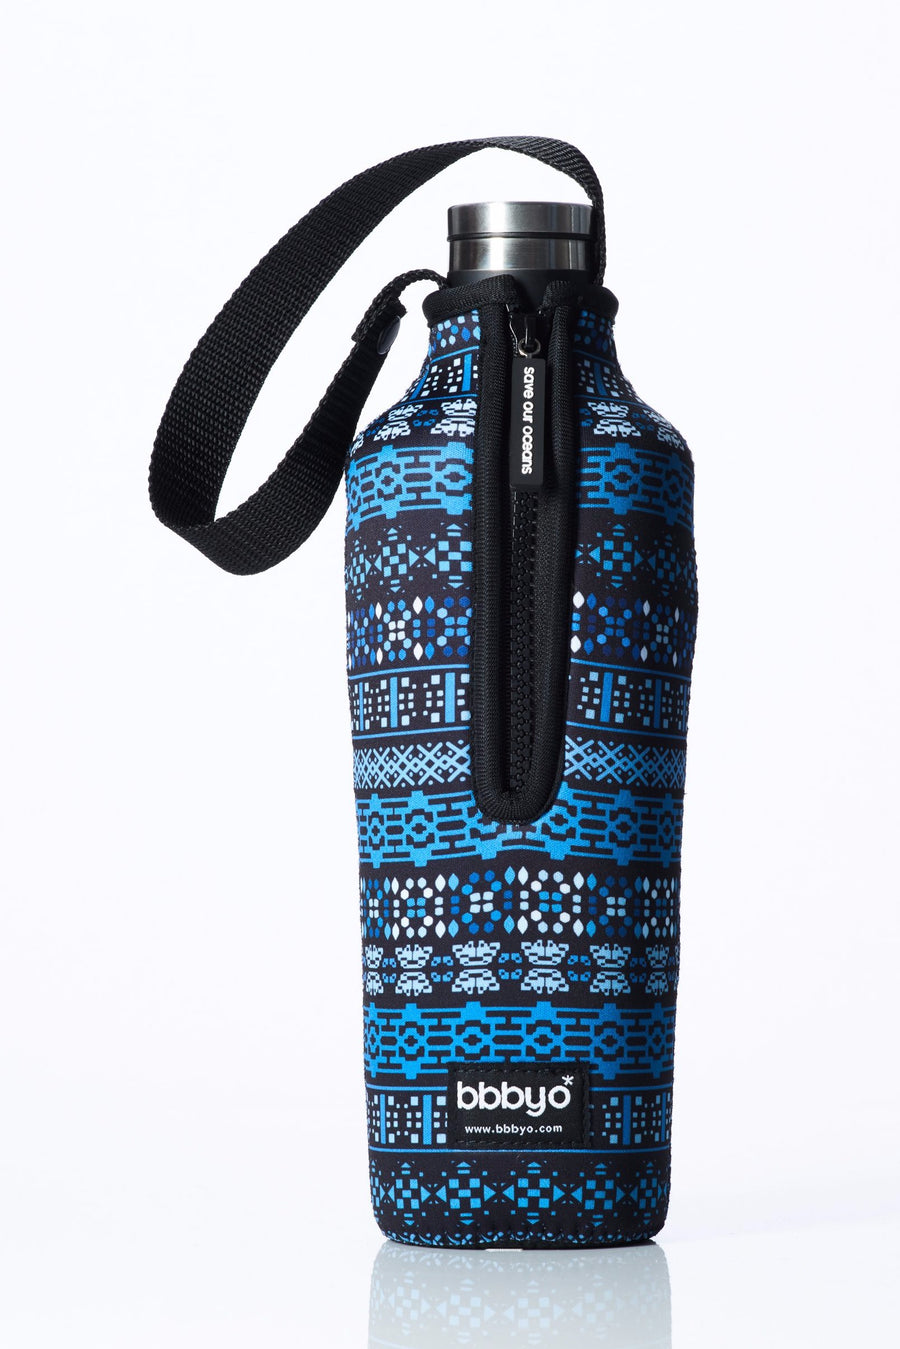 TRVLR by BBBYO, Cooler Carry Cover for Corkcicle®